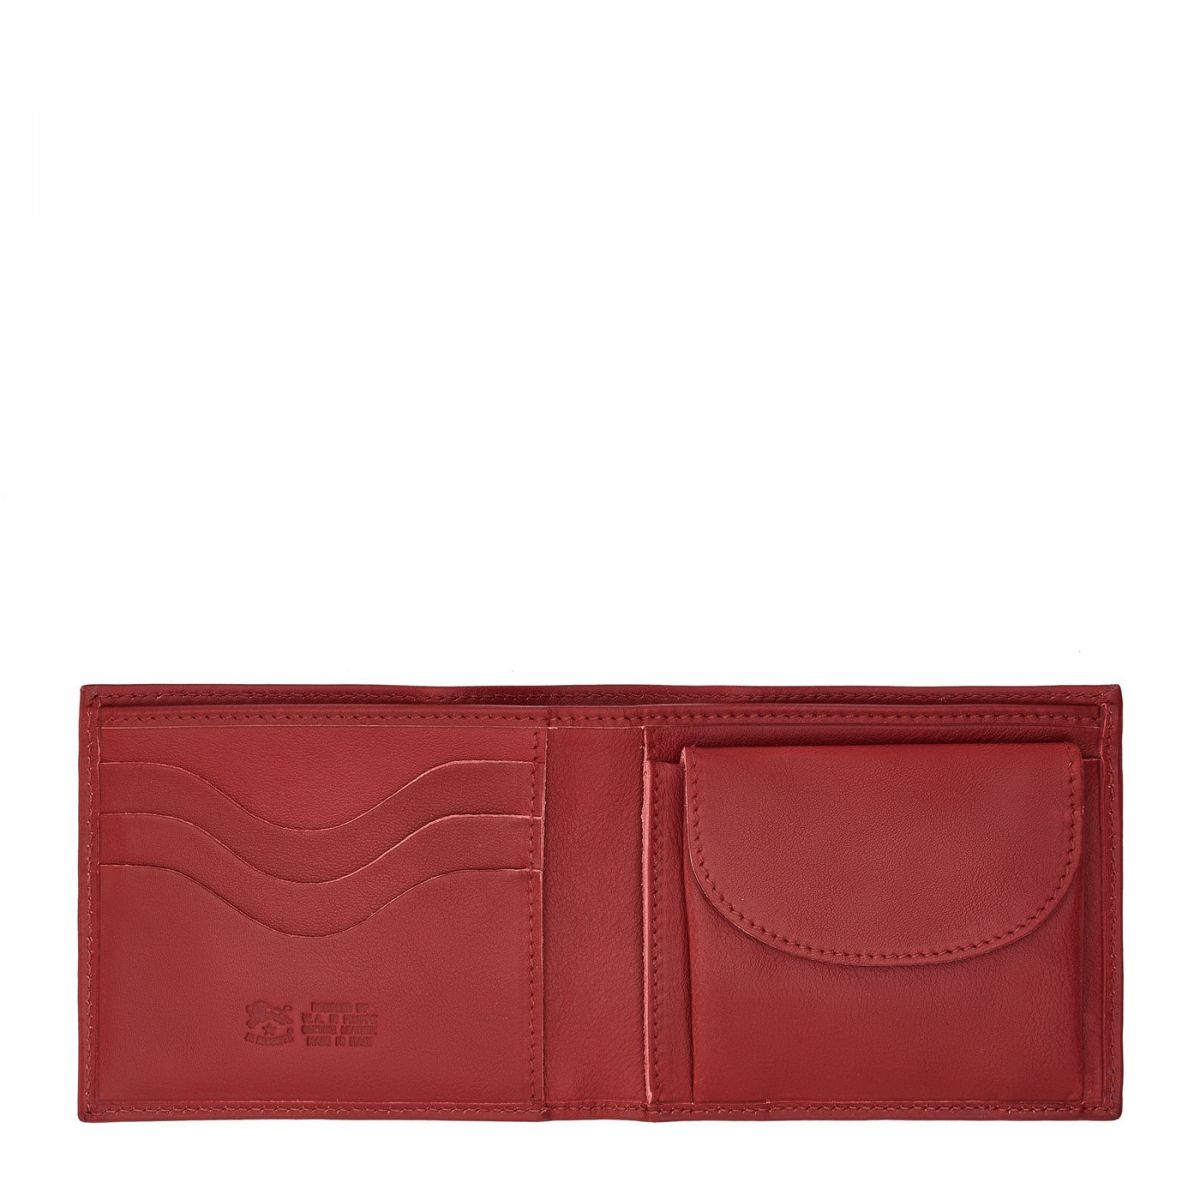 Men's Bi-Fold Wallet  in Cowhide Double Leather SBW007 color Red | Details